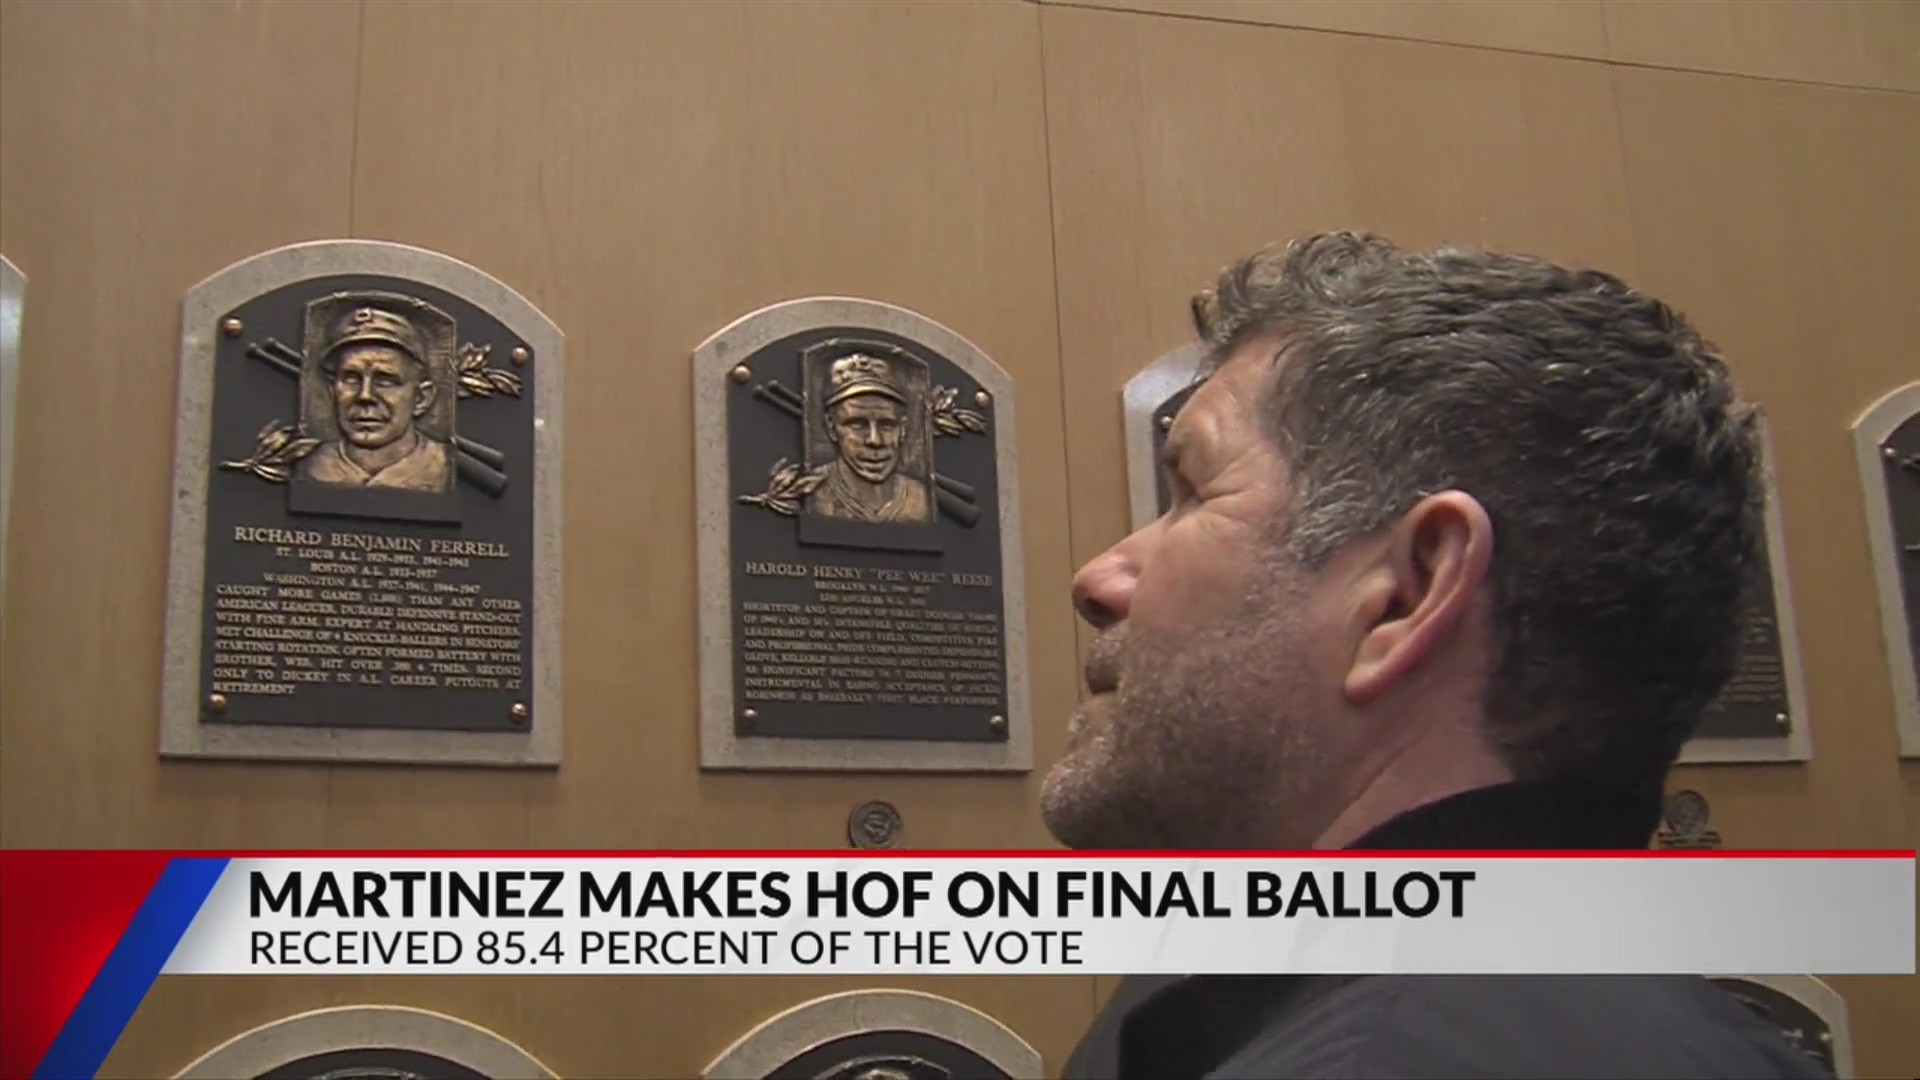 Martinez reaches Cooperstown on final ballot